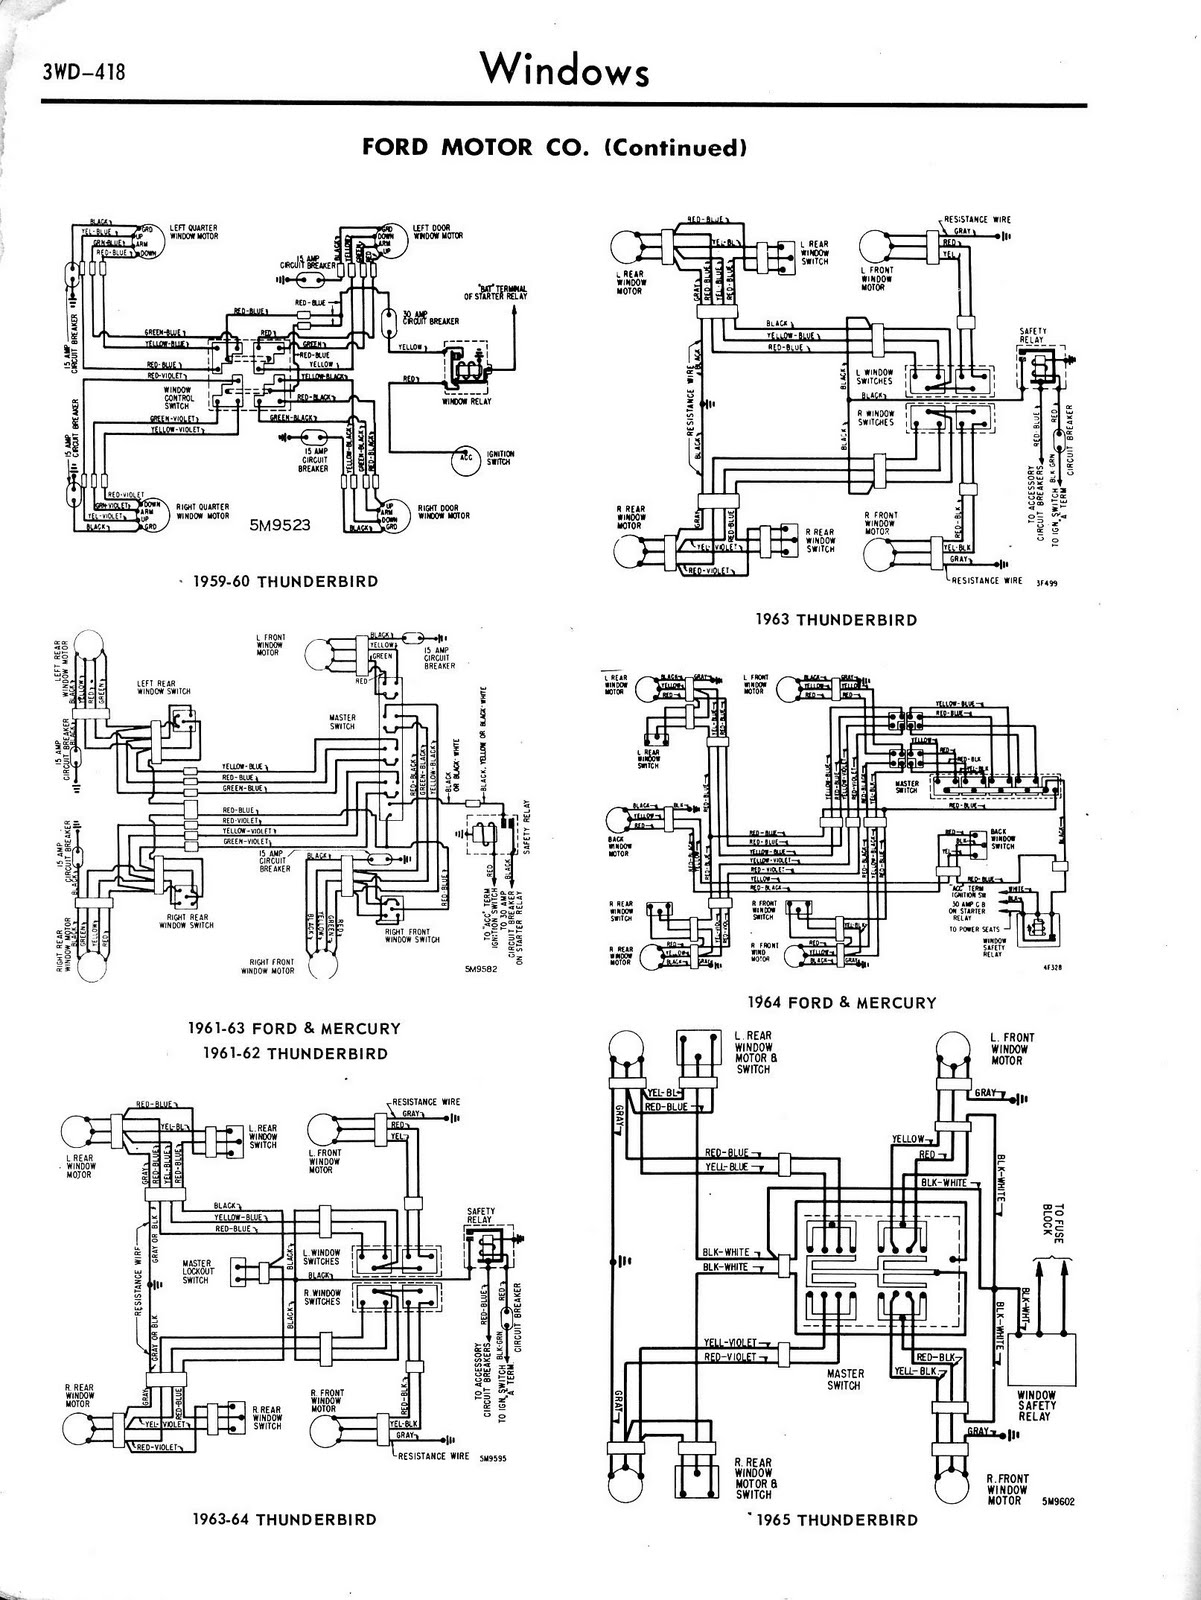 92 Thunderbird Fuse Box Everything About Wiring Diagram 74 Spitfire Library Rh 30 Kaufmed De